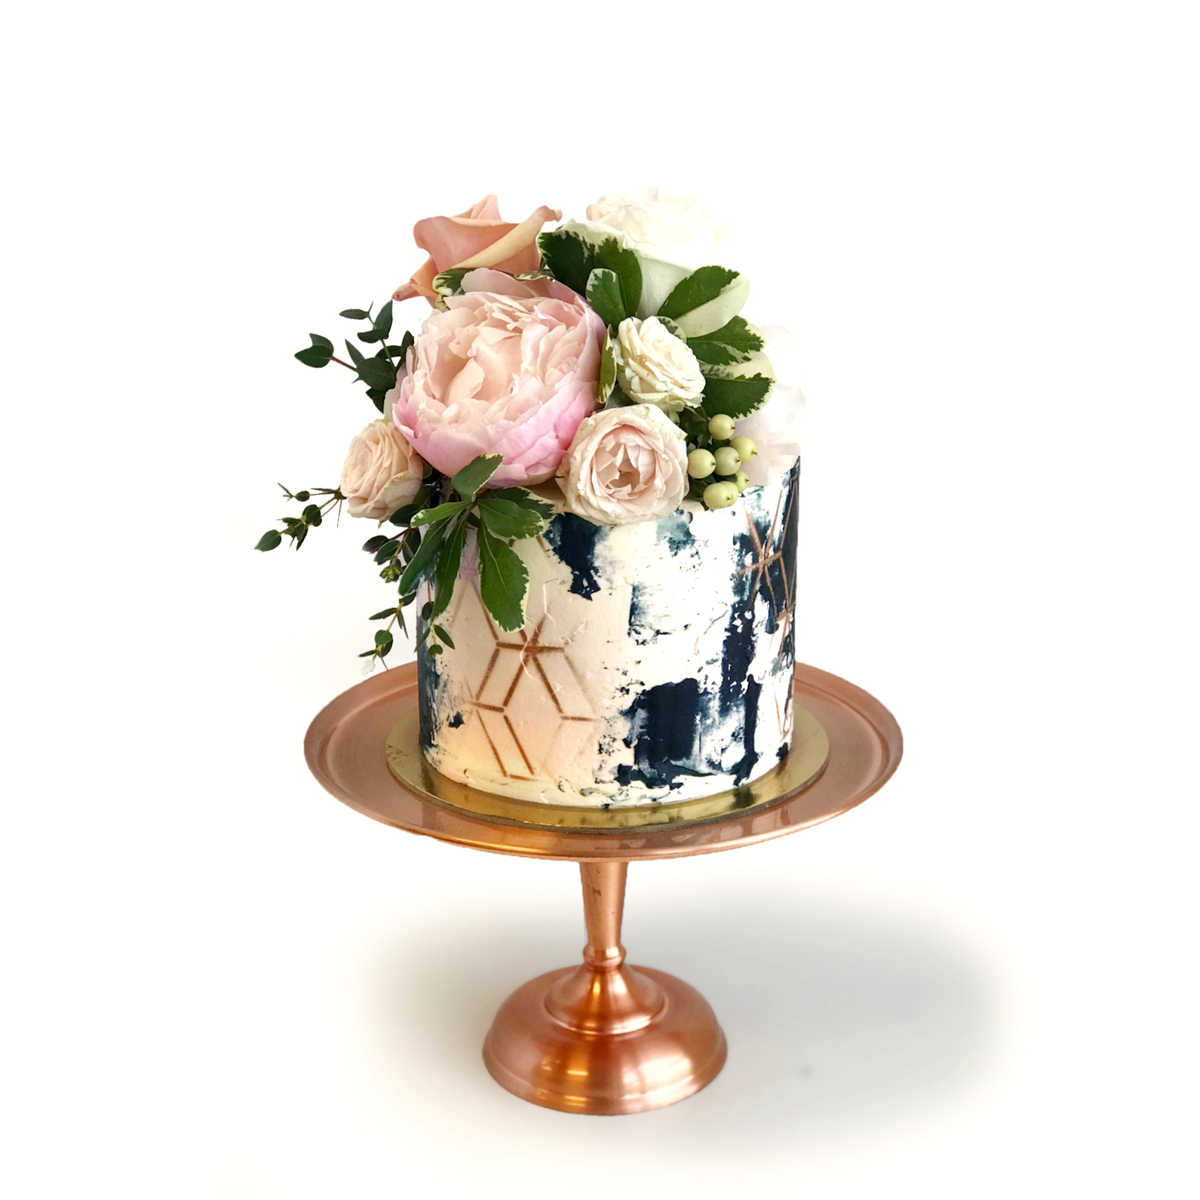 Auction CAke - May 29